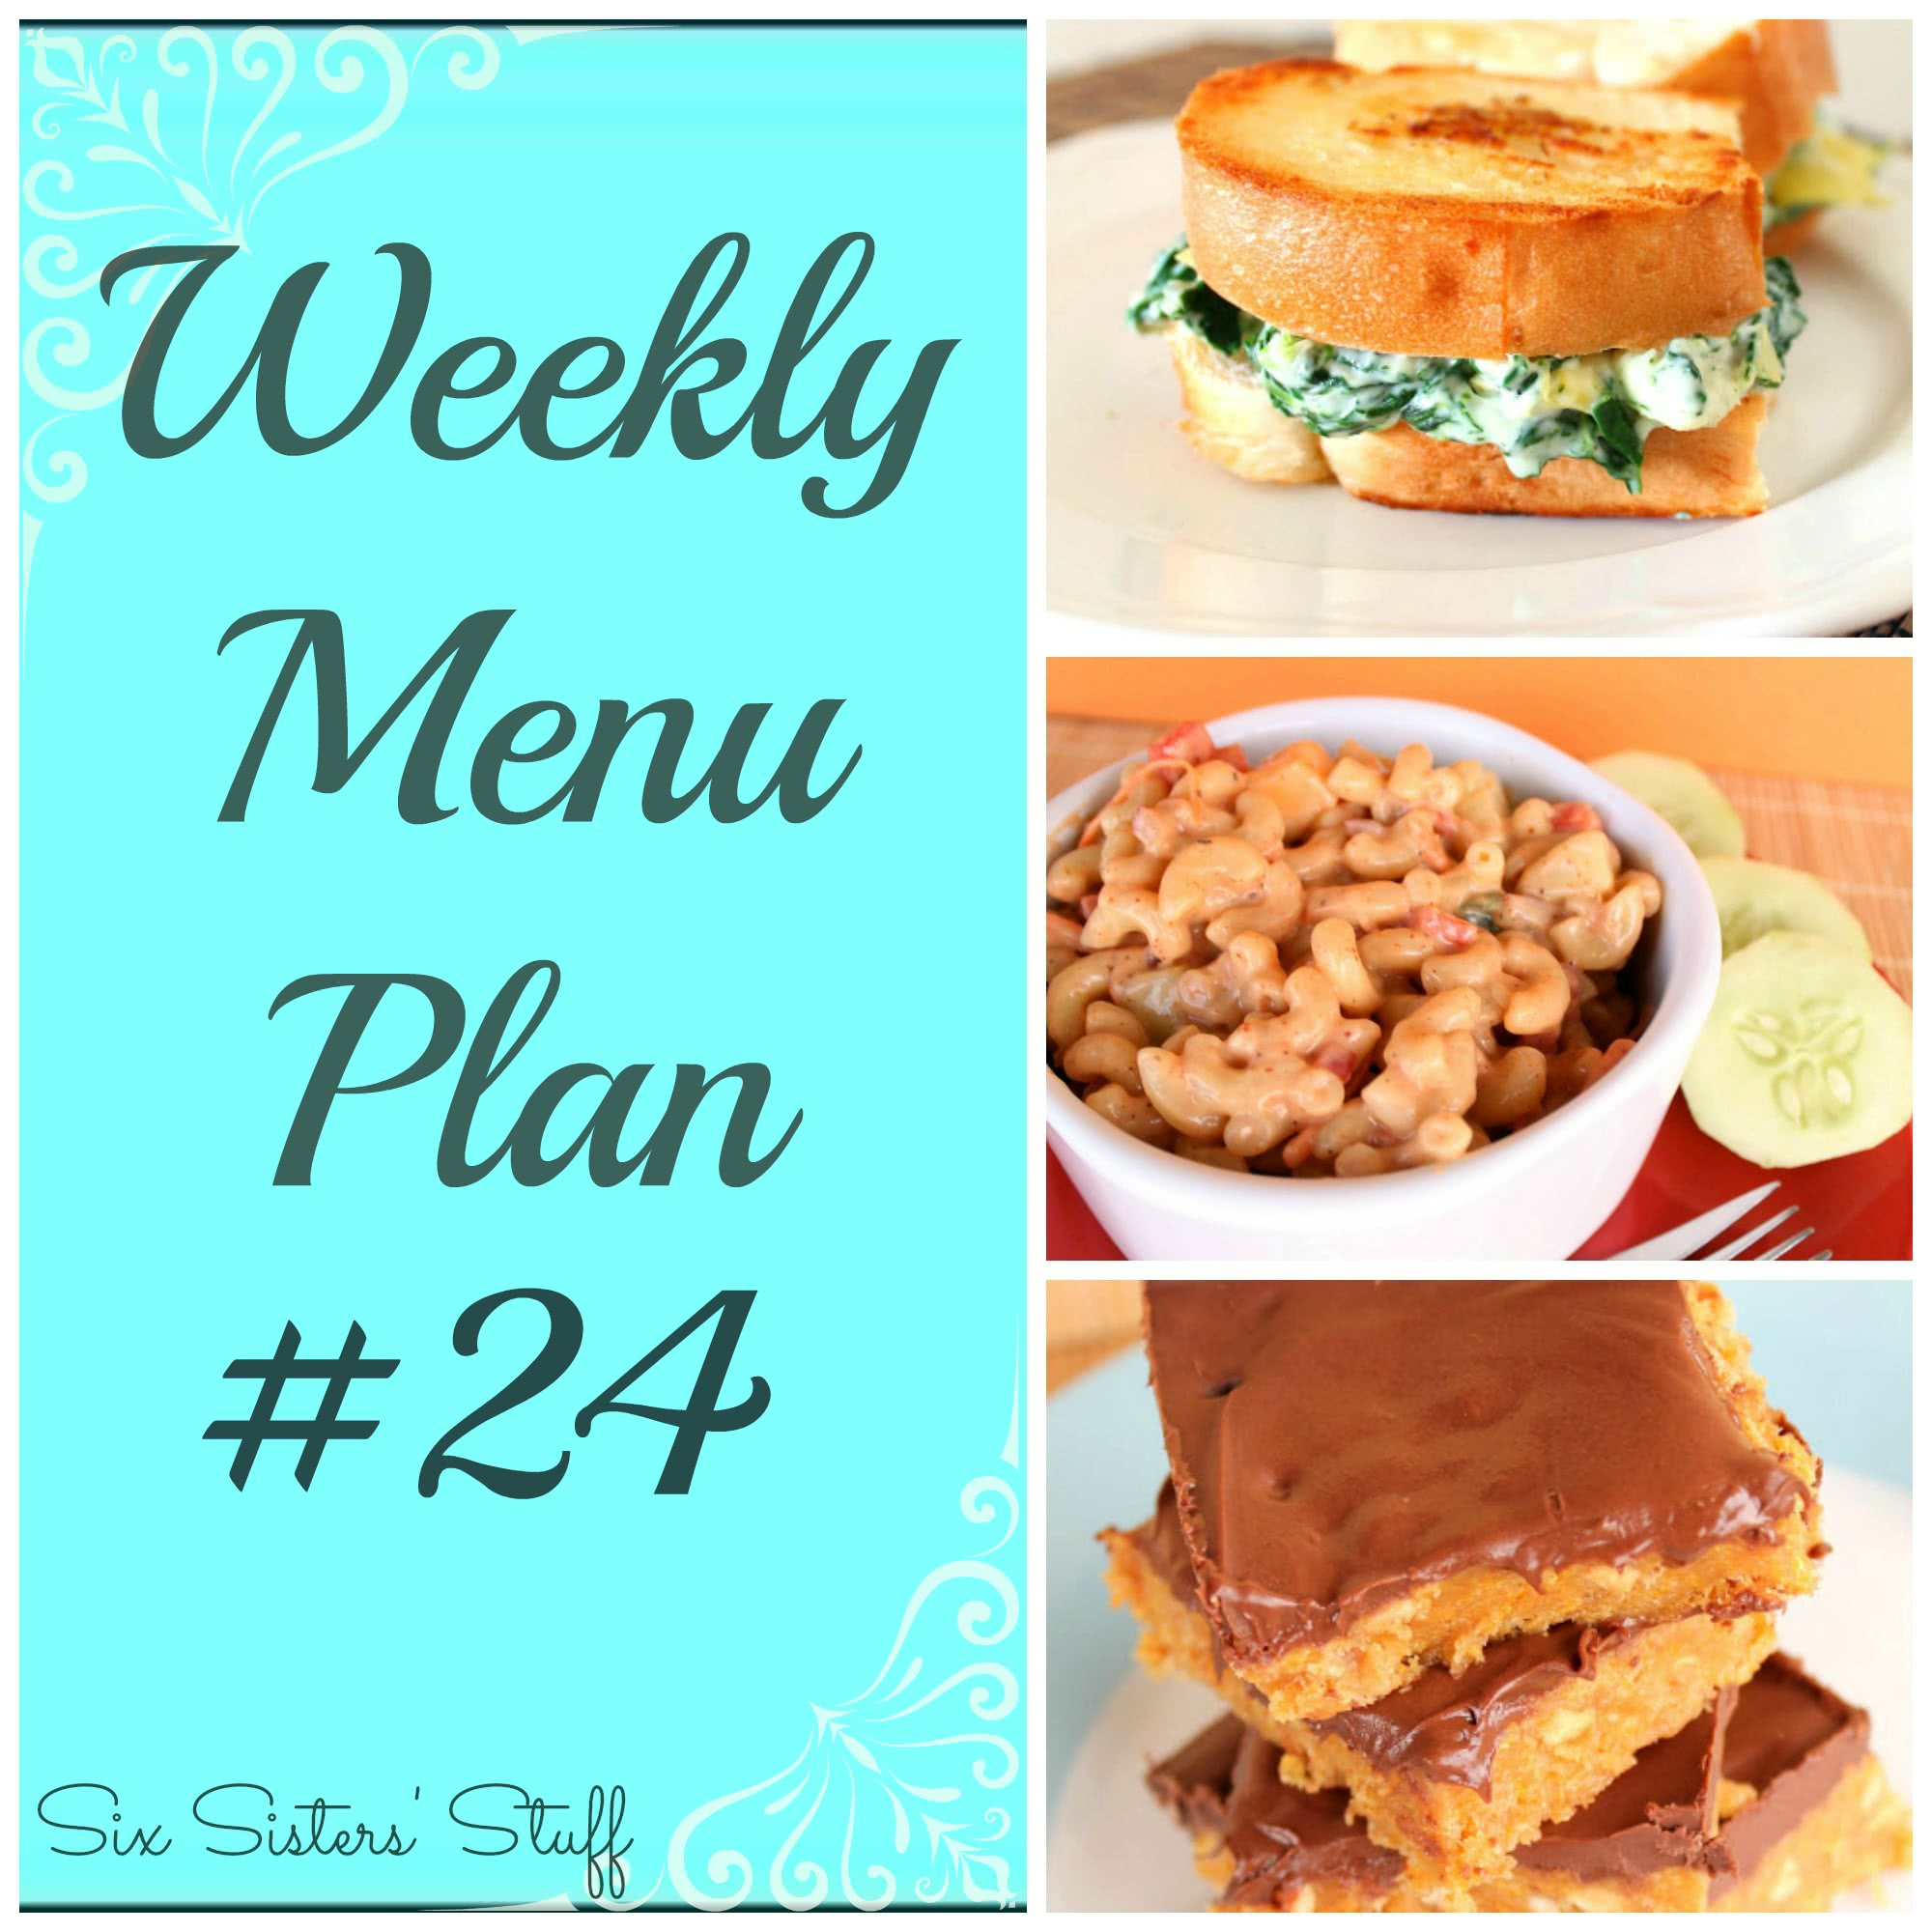 Six Sisters' Weekly Menu Plan #24